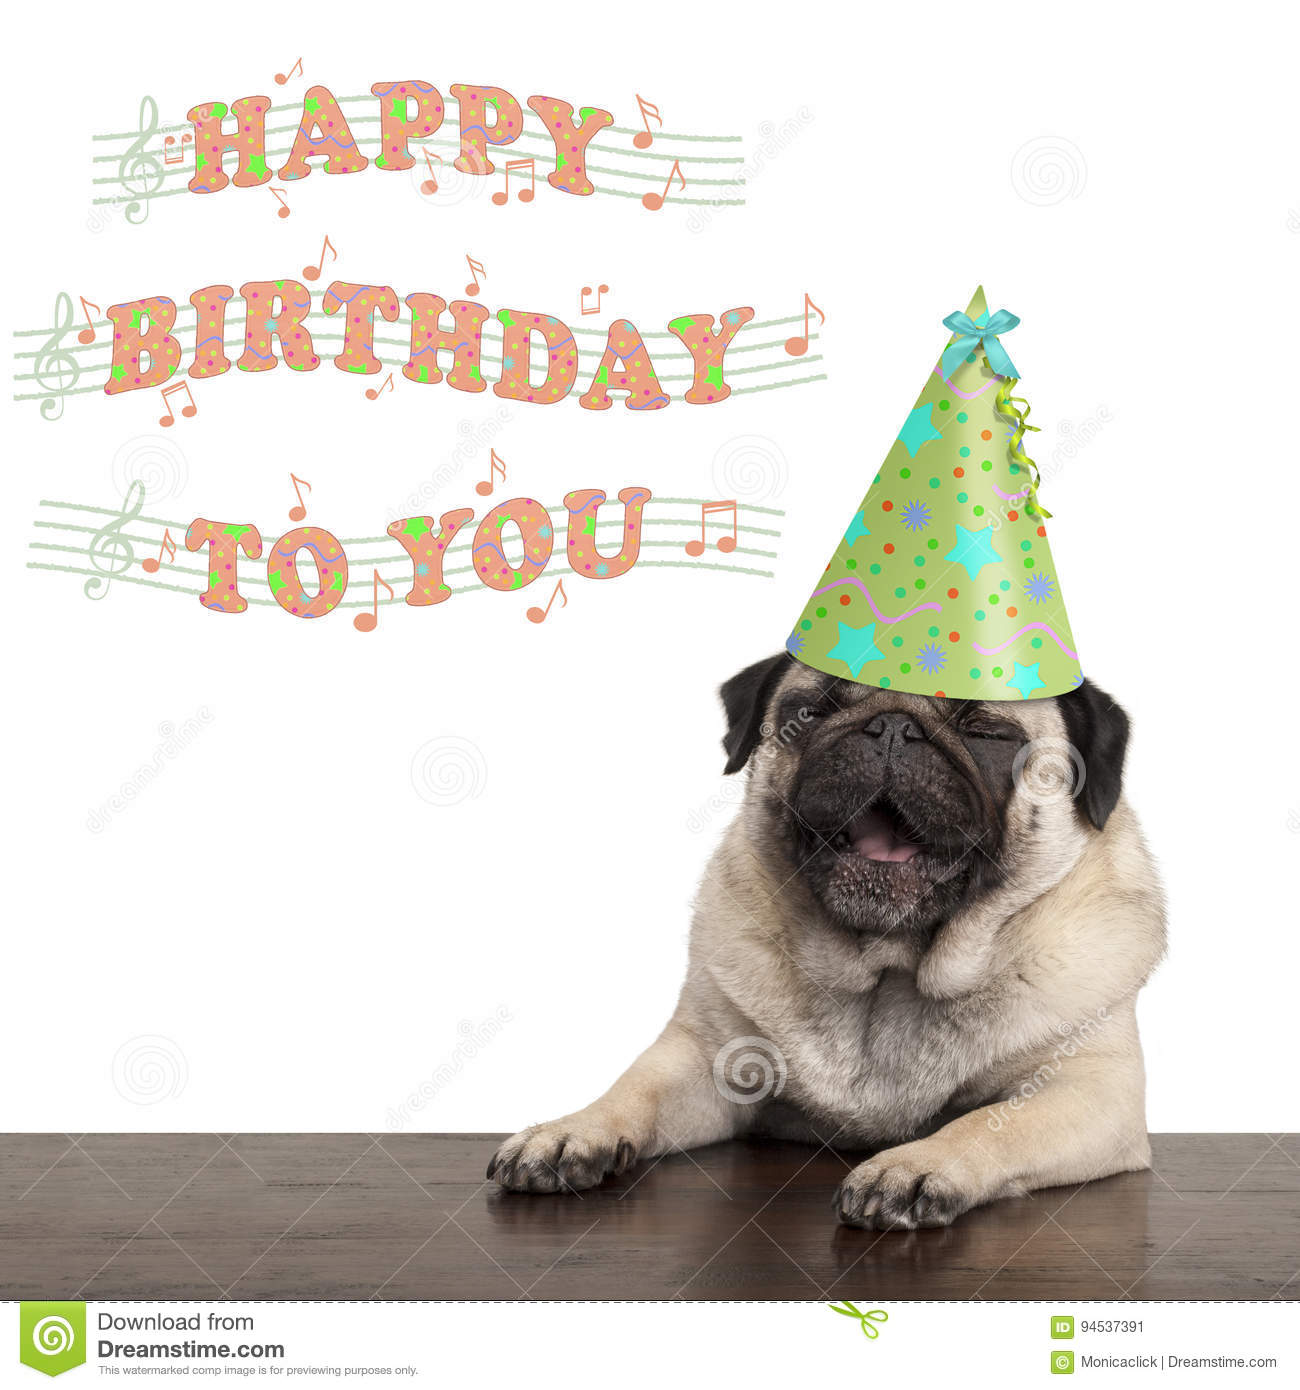 Adorable Cute Pug Puppy Dog Singing Happy Birthday To You Isolated On White Background Stock